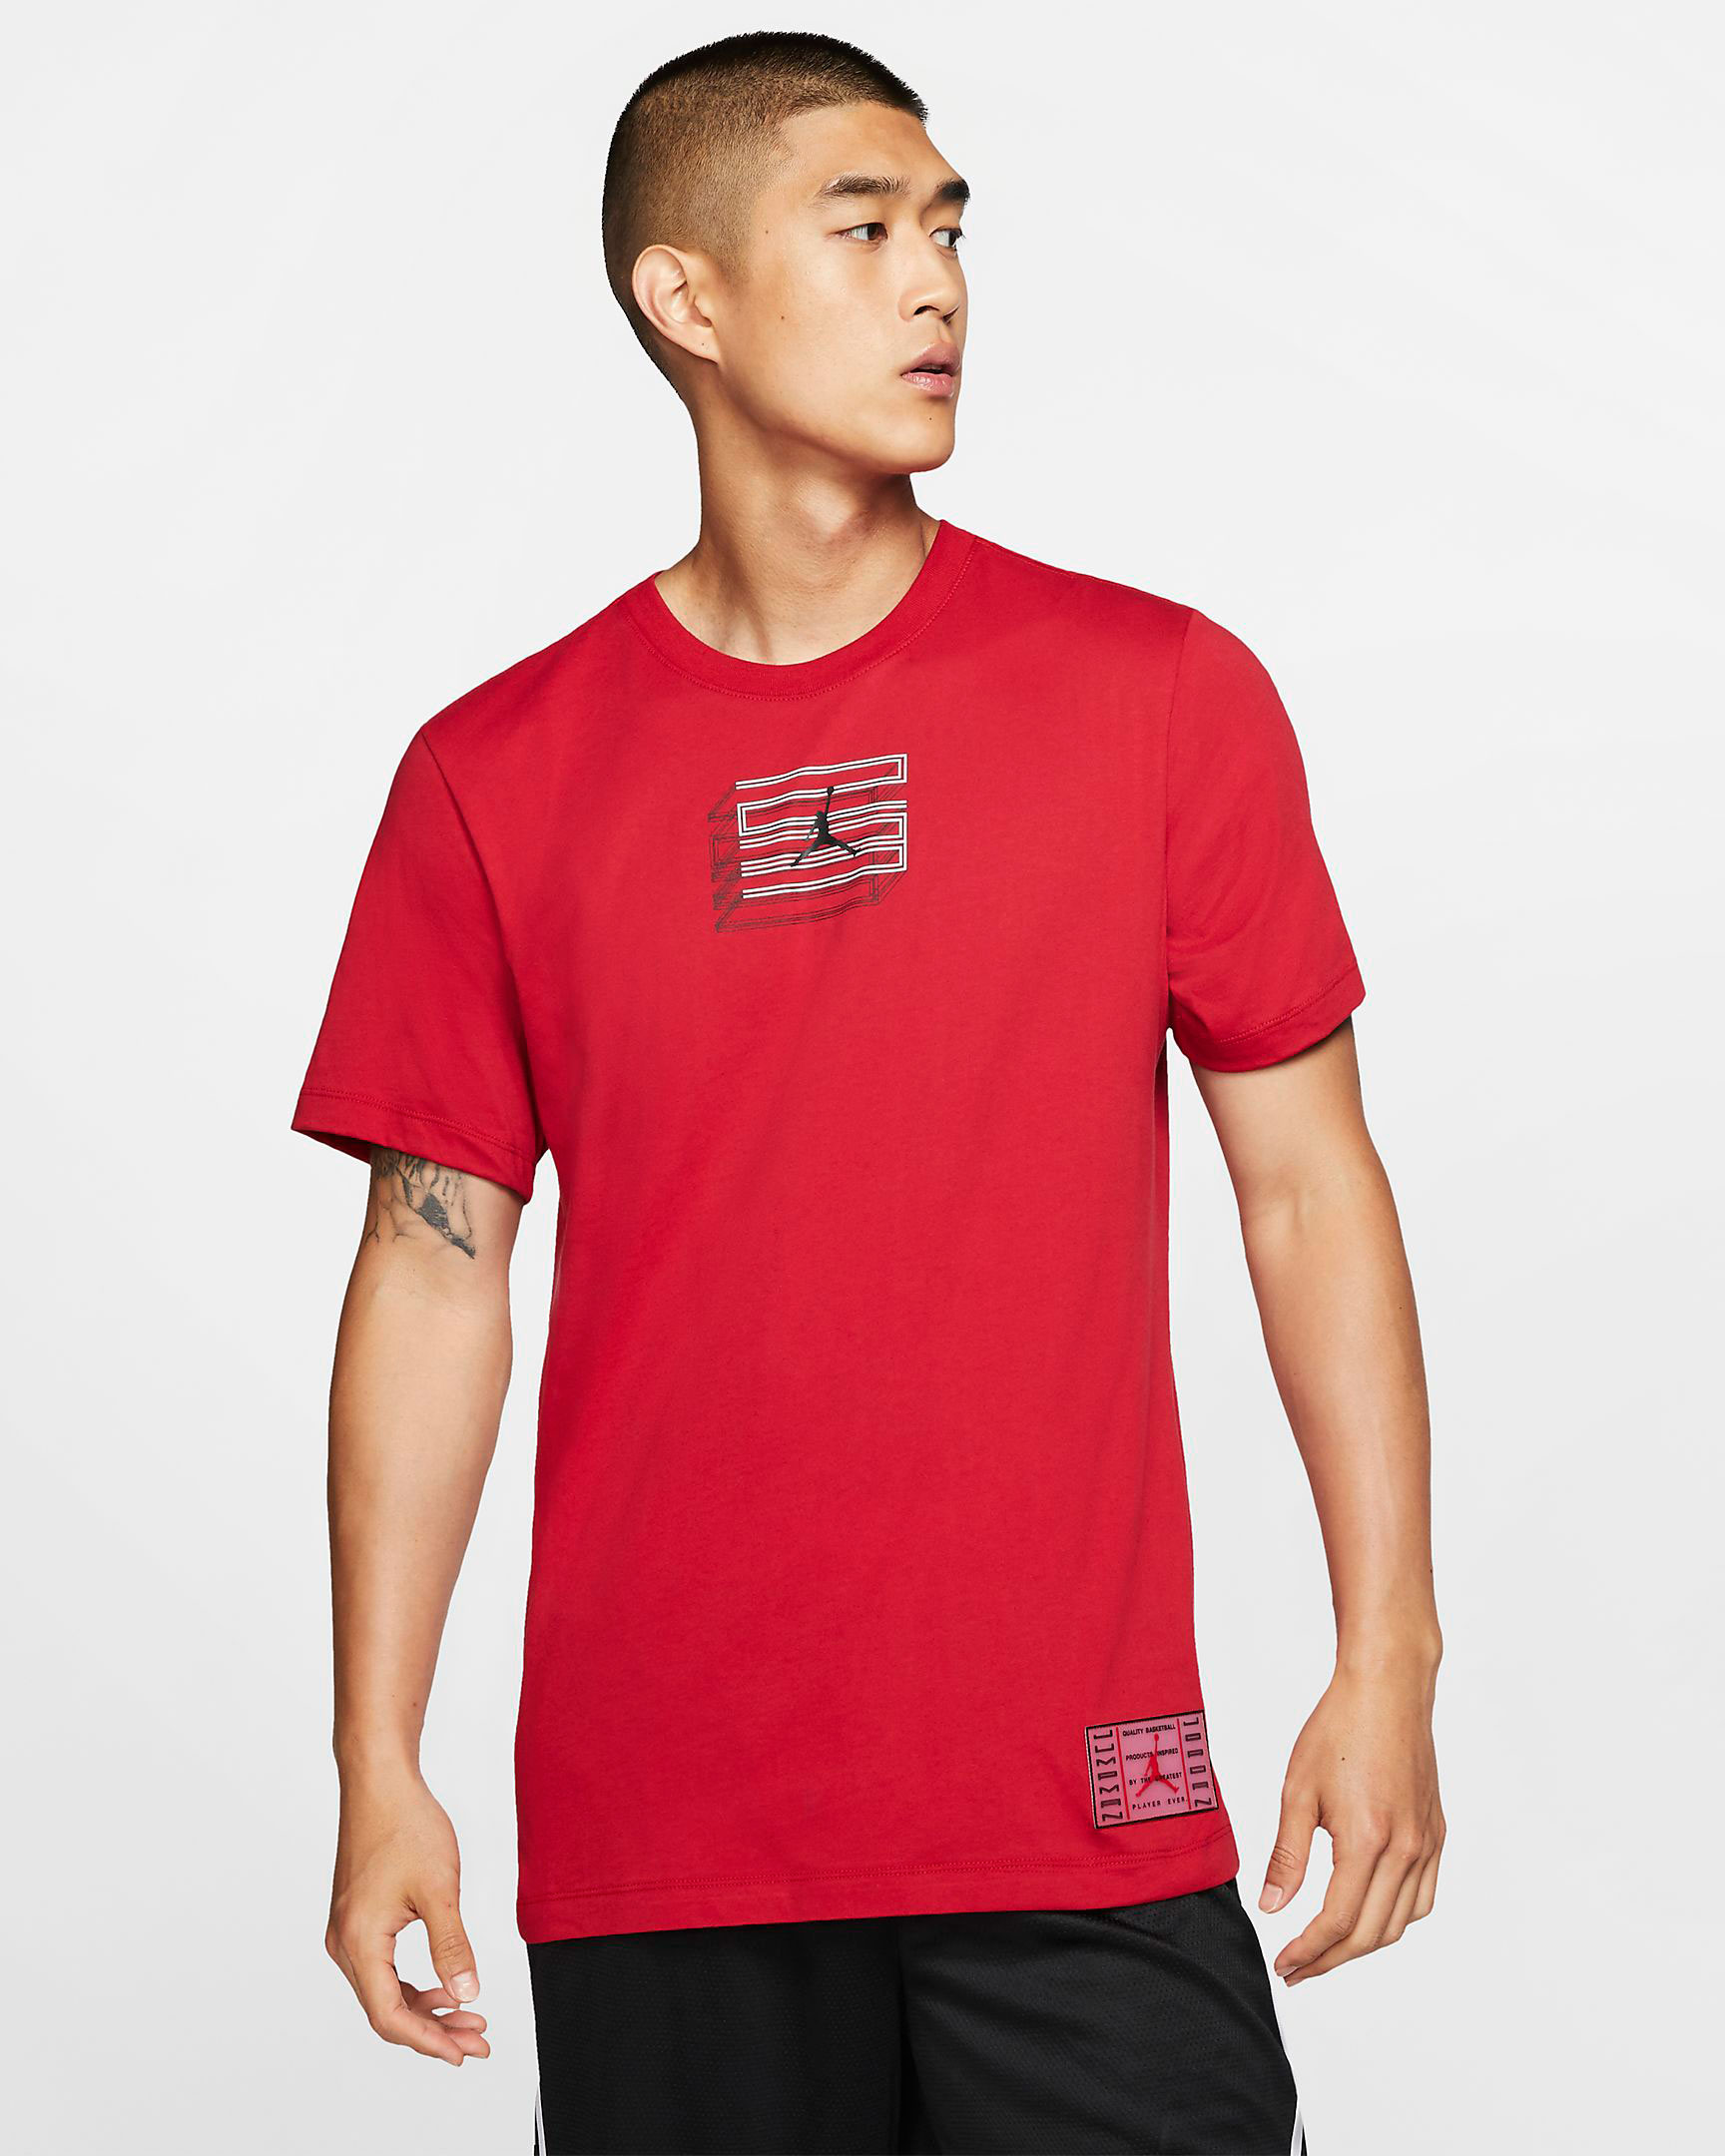 air-jordan-11-bred-2019-tee-shirt-1